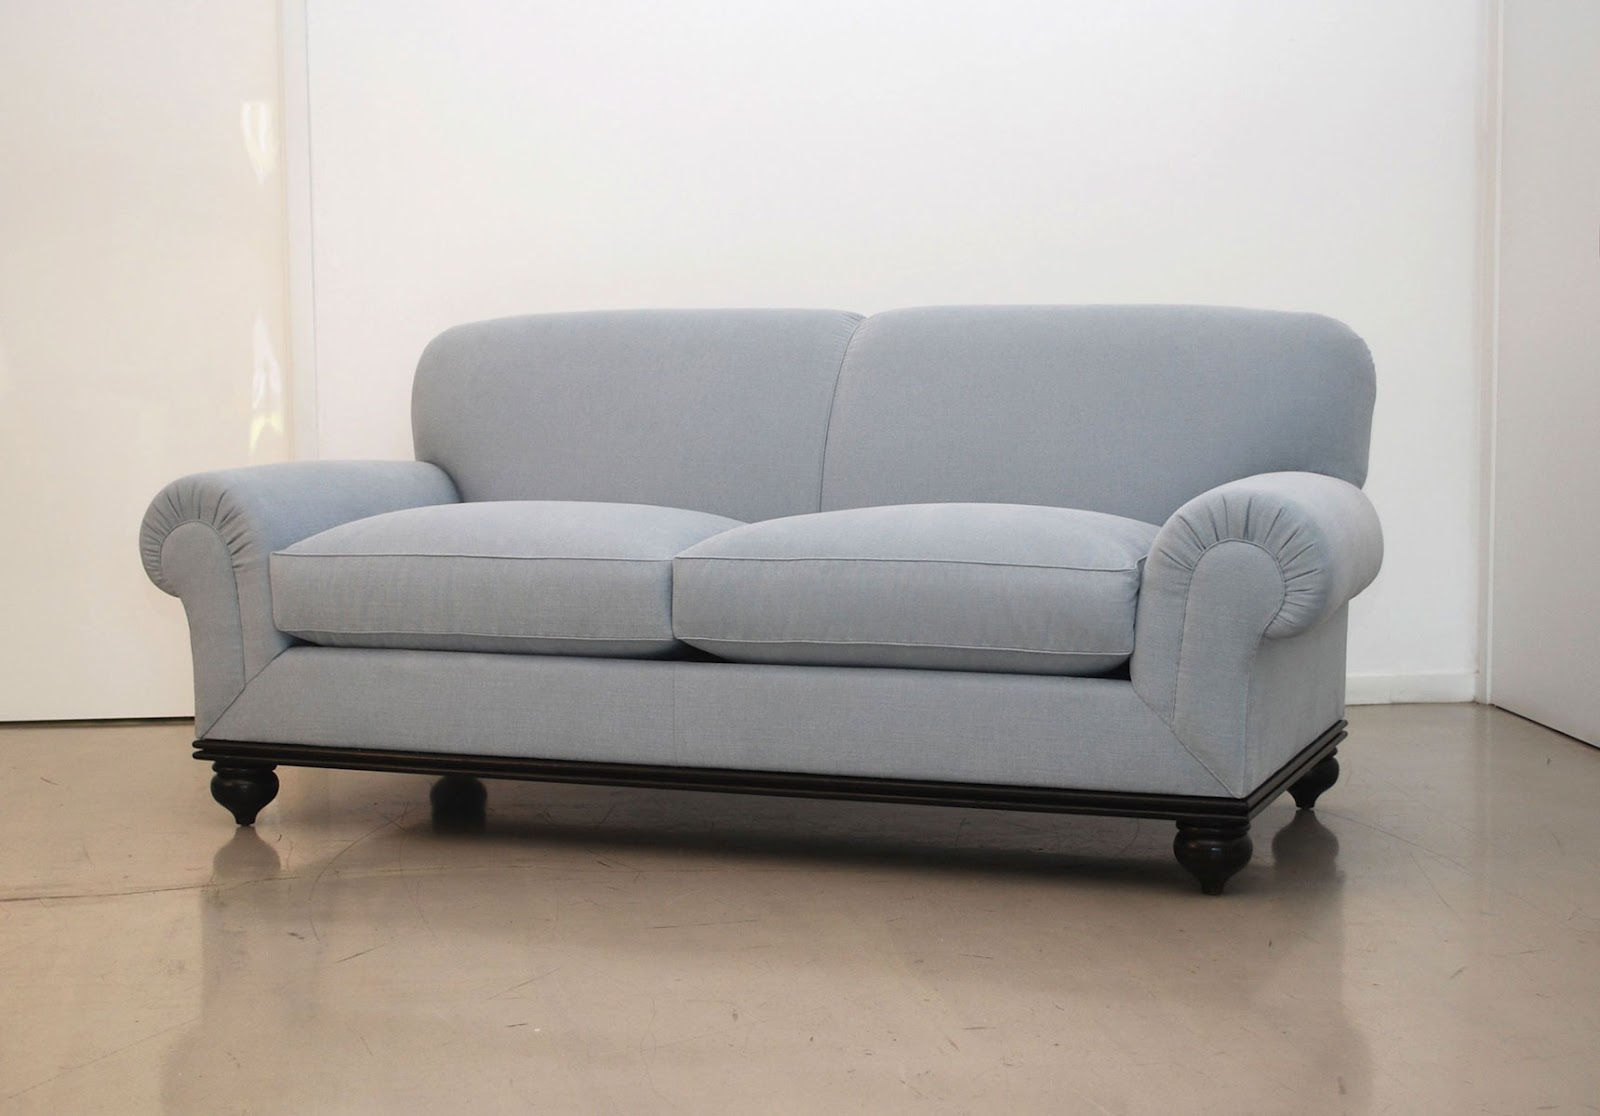 Classic Design Custom Sofa With Turned Legs Interiors Inside Ideas Interiors design about Everything [magnanprojects.com]